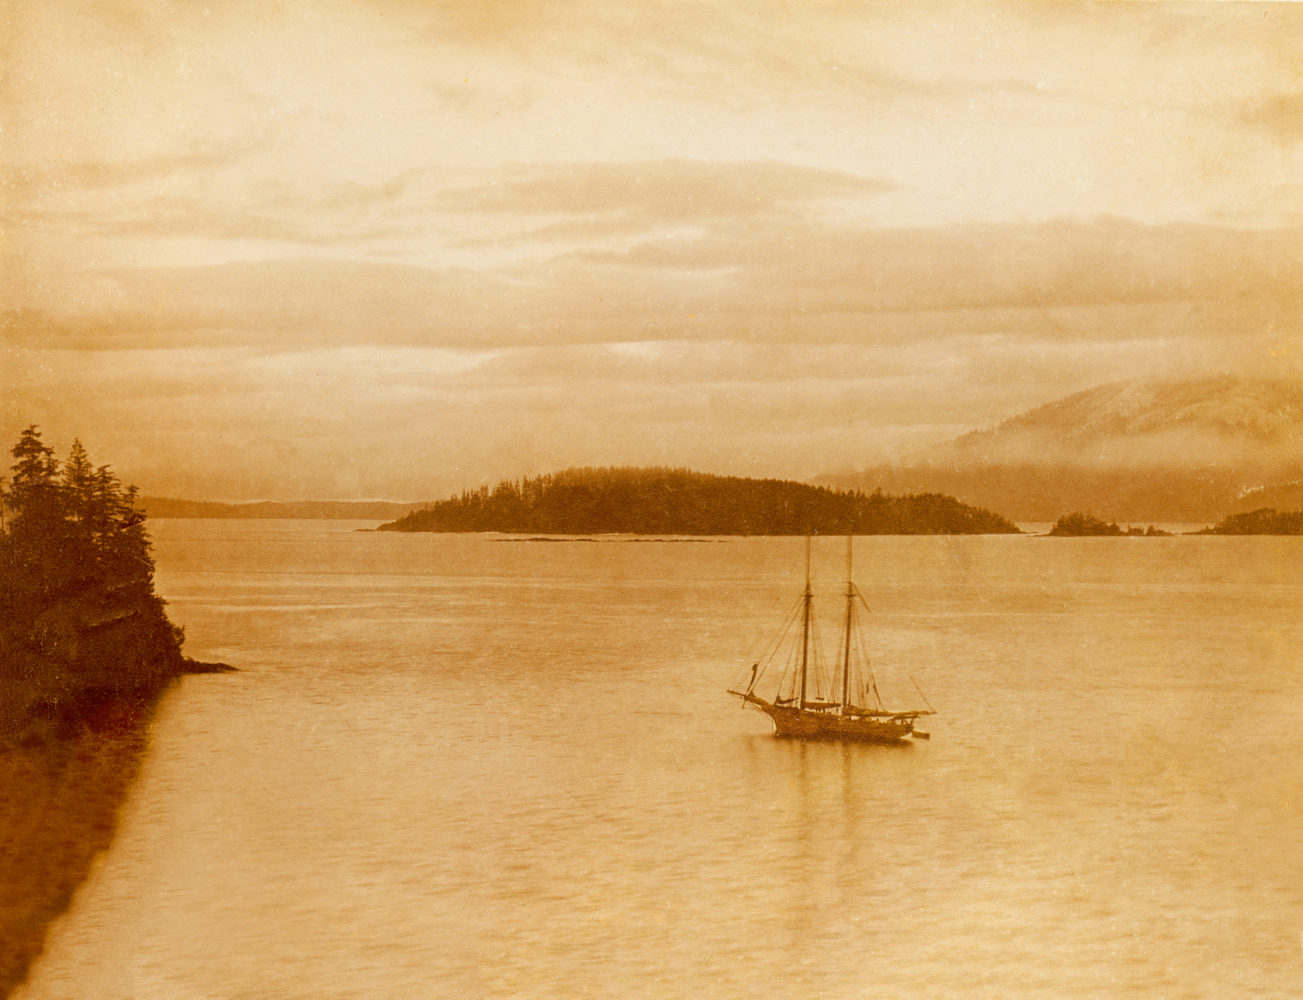 #7 - Fur sealer, Bamfield Inlet, 1905